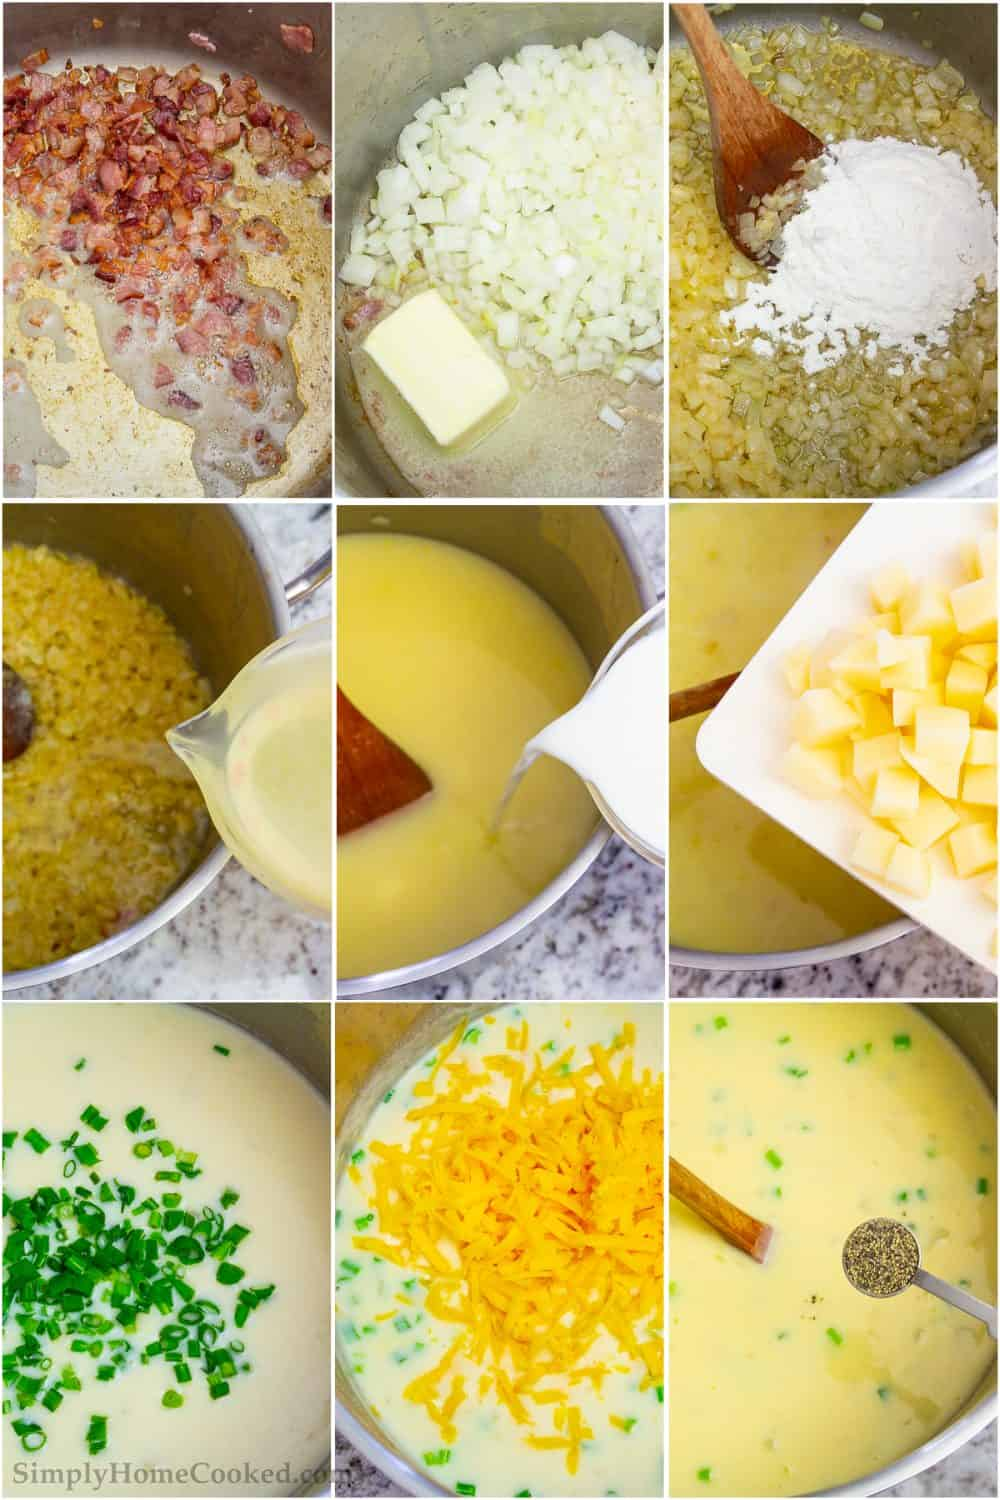 Step by step picture tutorial of cooking bacon, creating a roux, adding potatoes, and cheese to make this easy potato soup